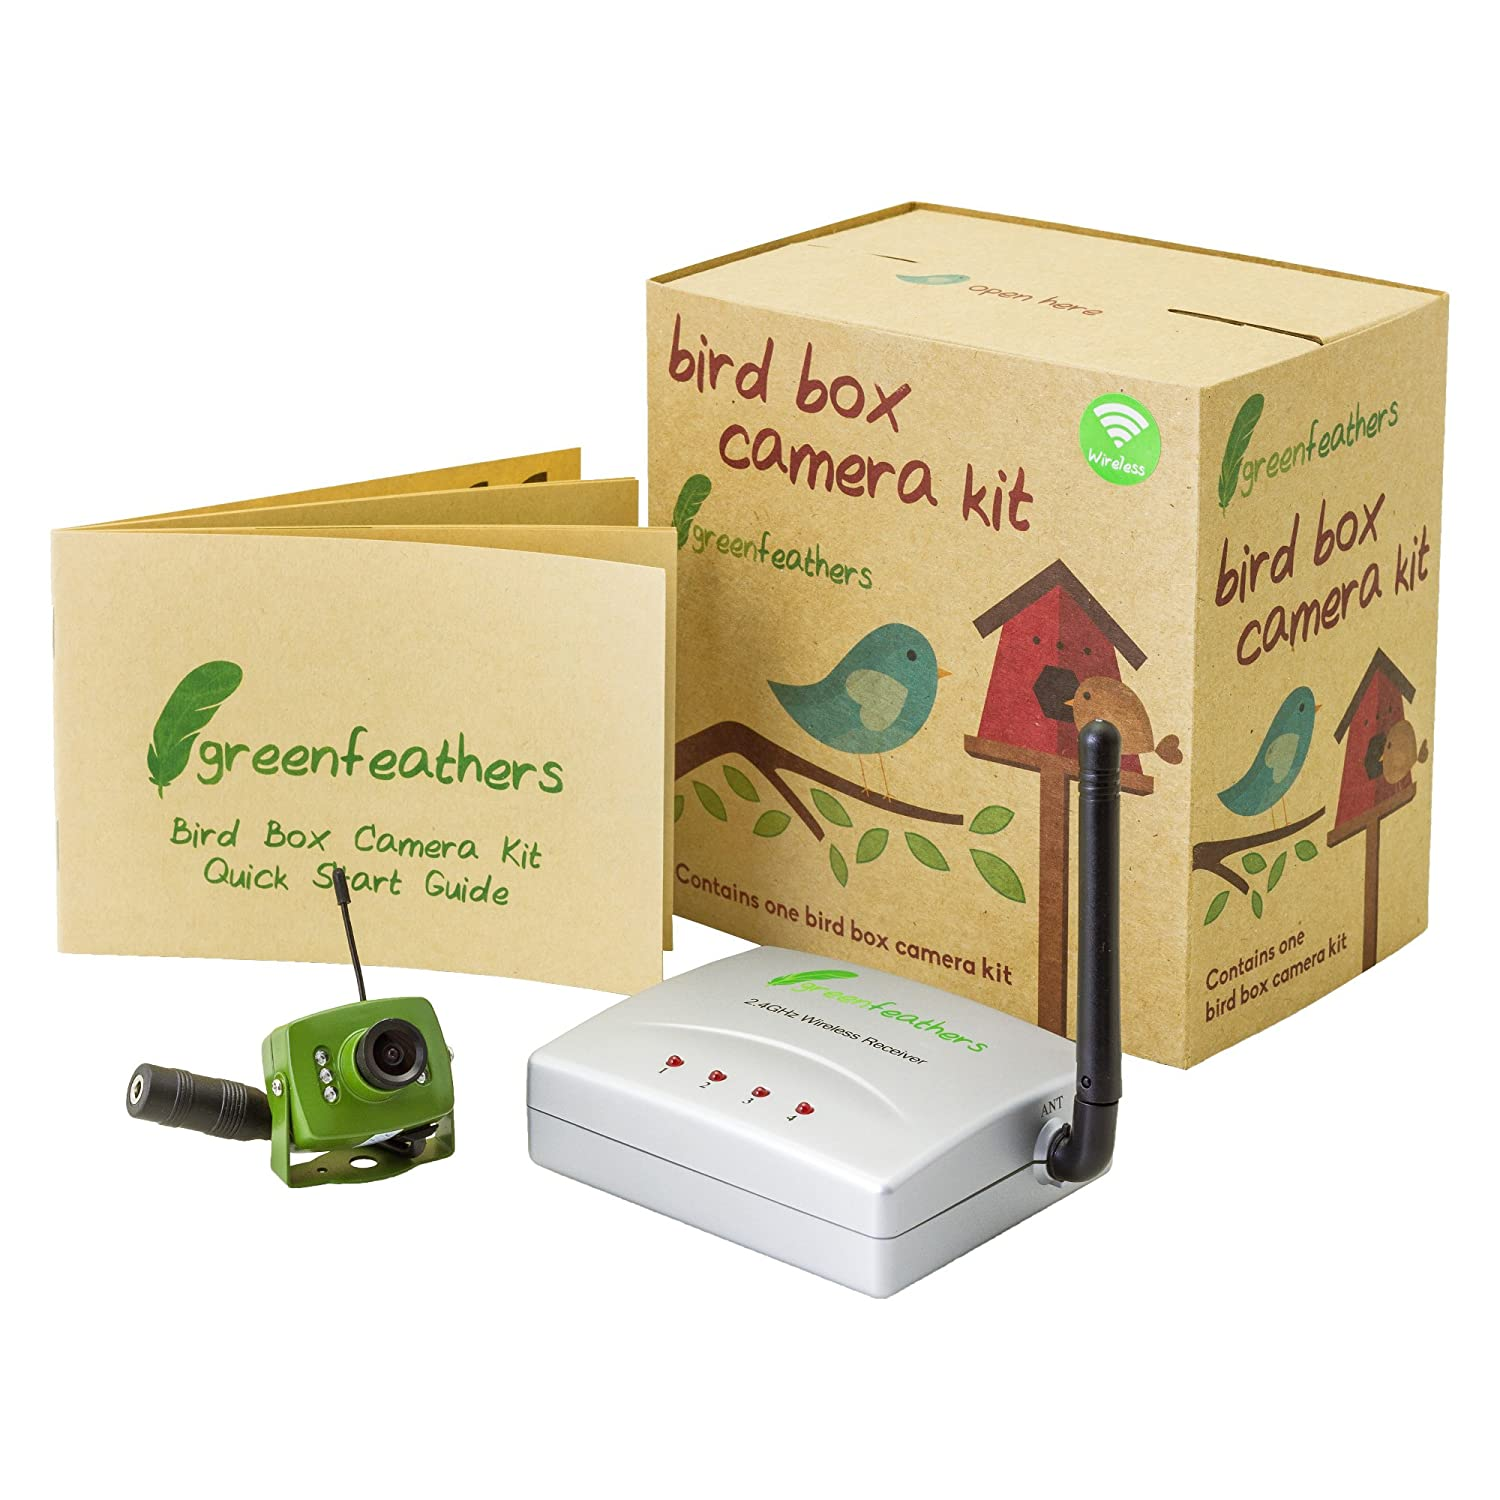 Green with 20m Extension Cable Greenfeathers Wireless Bird Box Camera with Night Vision, Wireless Receiver, 20m Power Extension Cable, 700TVL Video Perfect for your Garden, Nest Boxes, Bird Houses, Wide Angle Lens